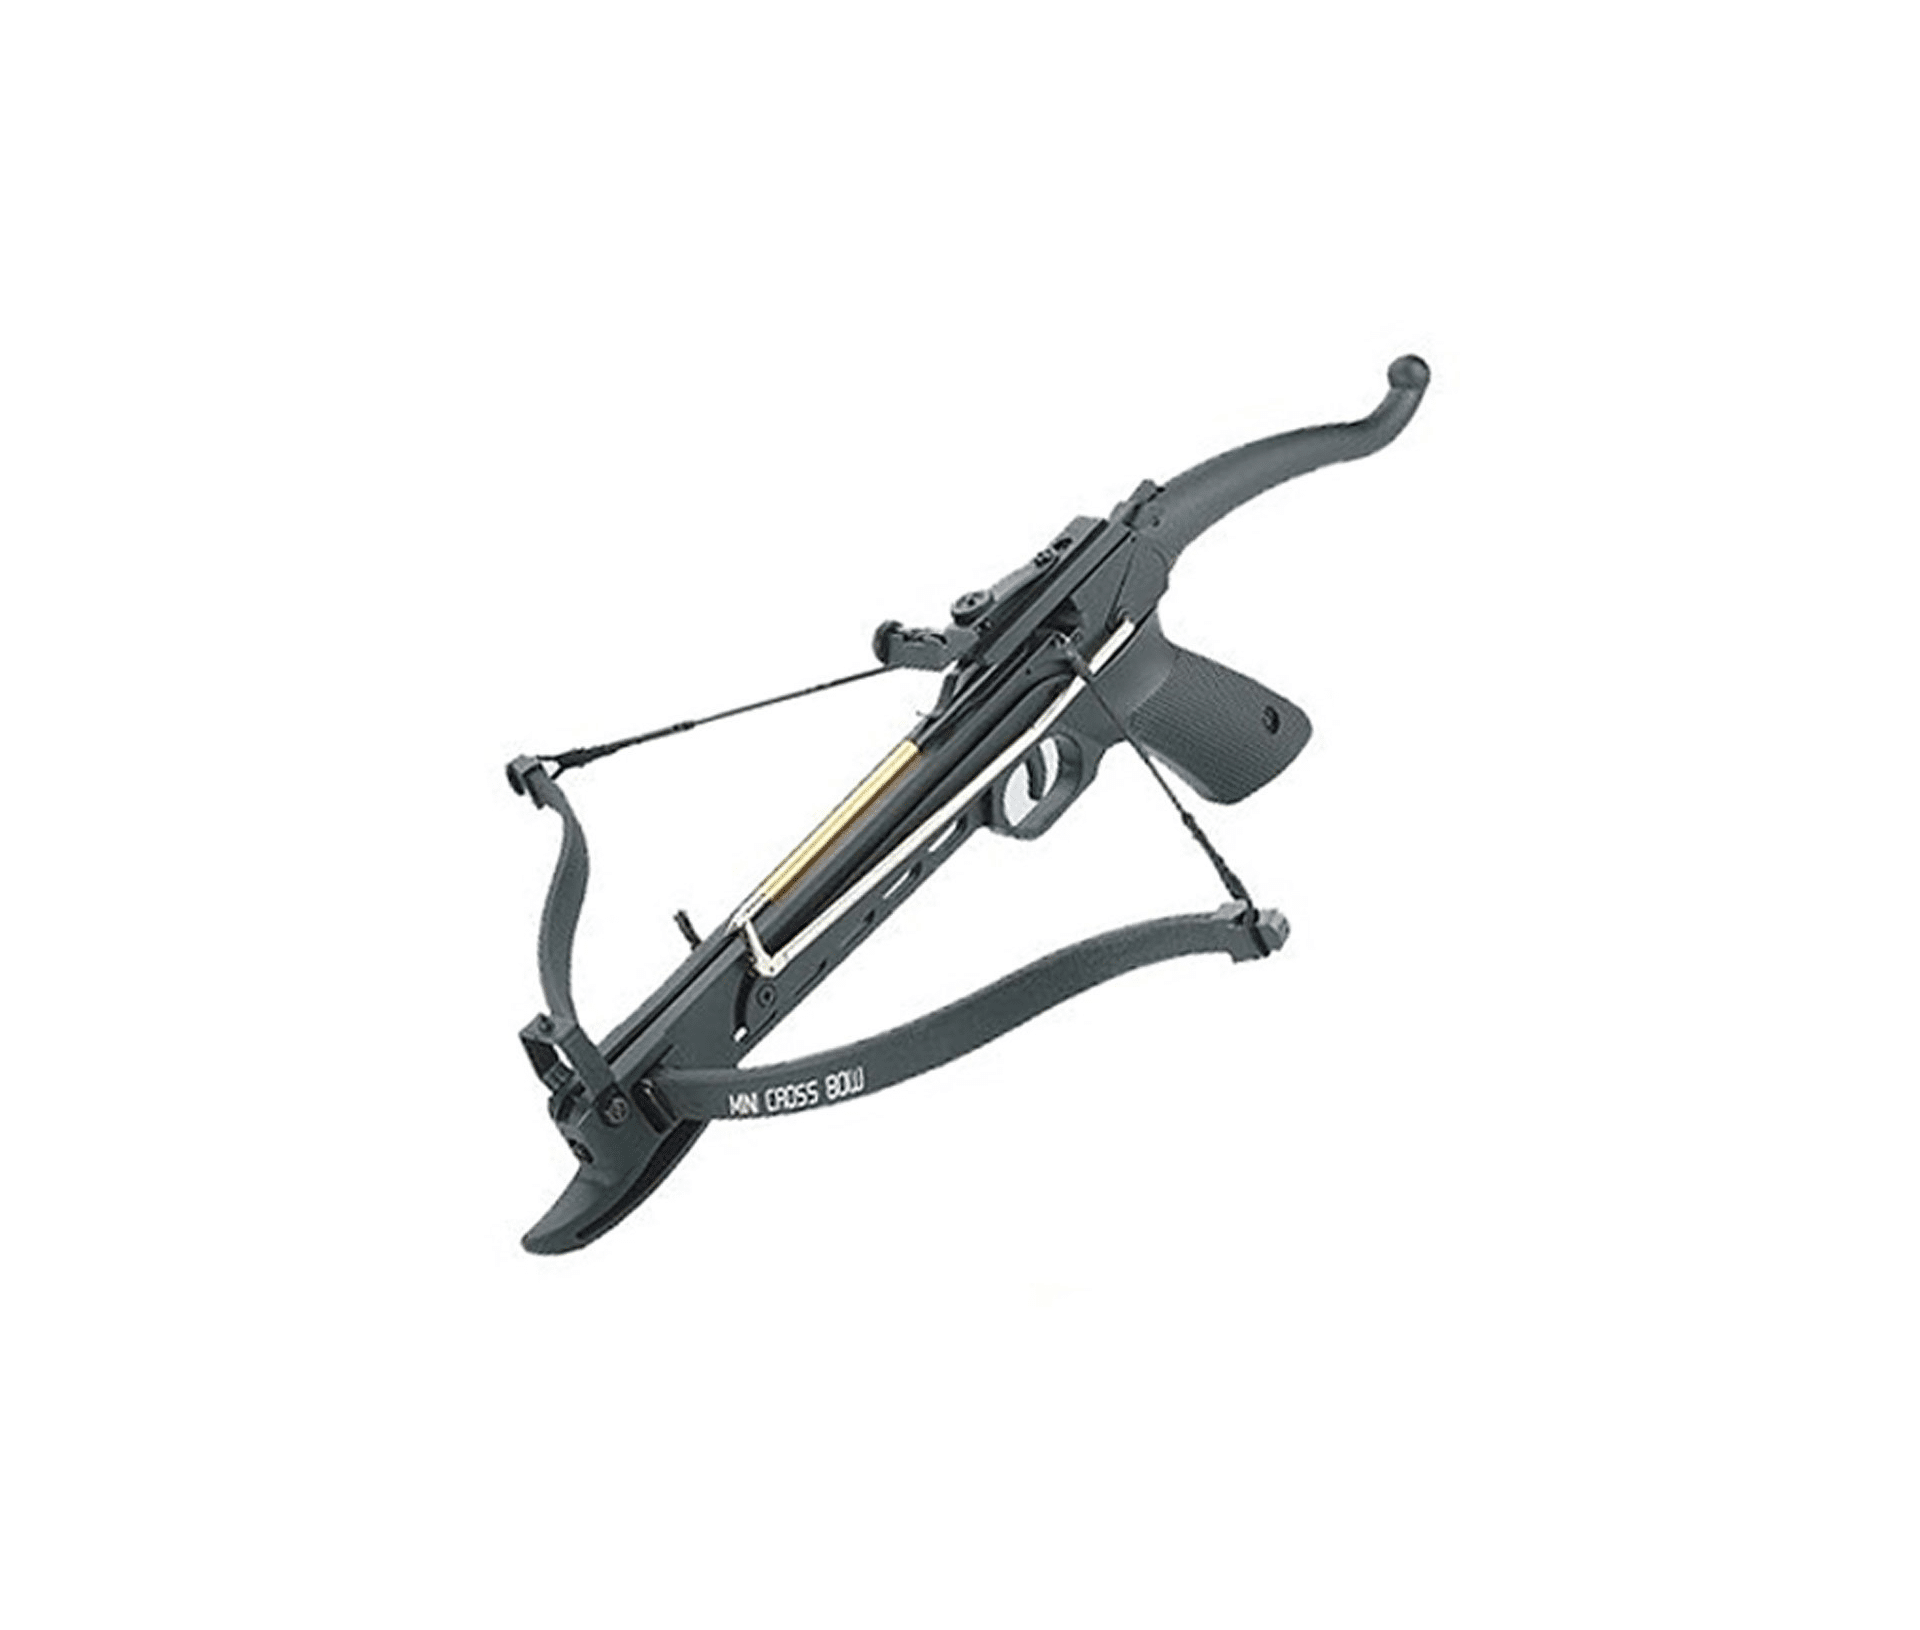 SAS 80-Pound Self Cocking Pistol Crossbow